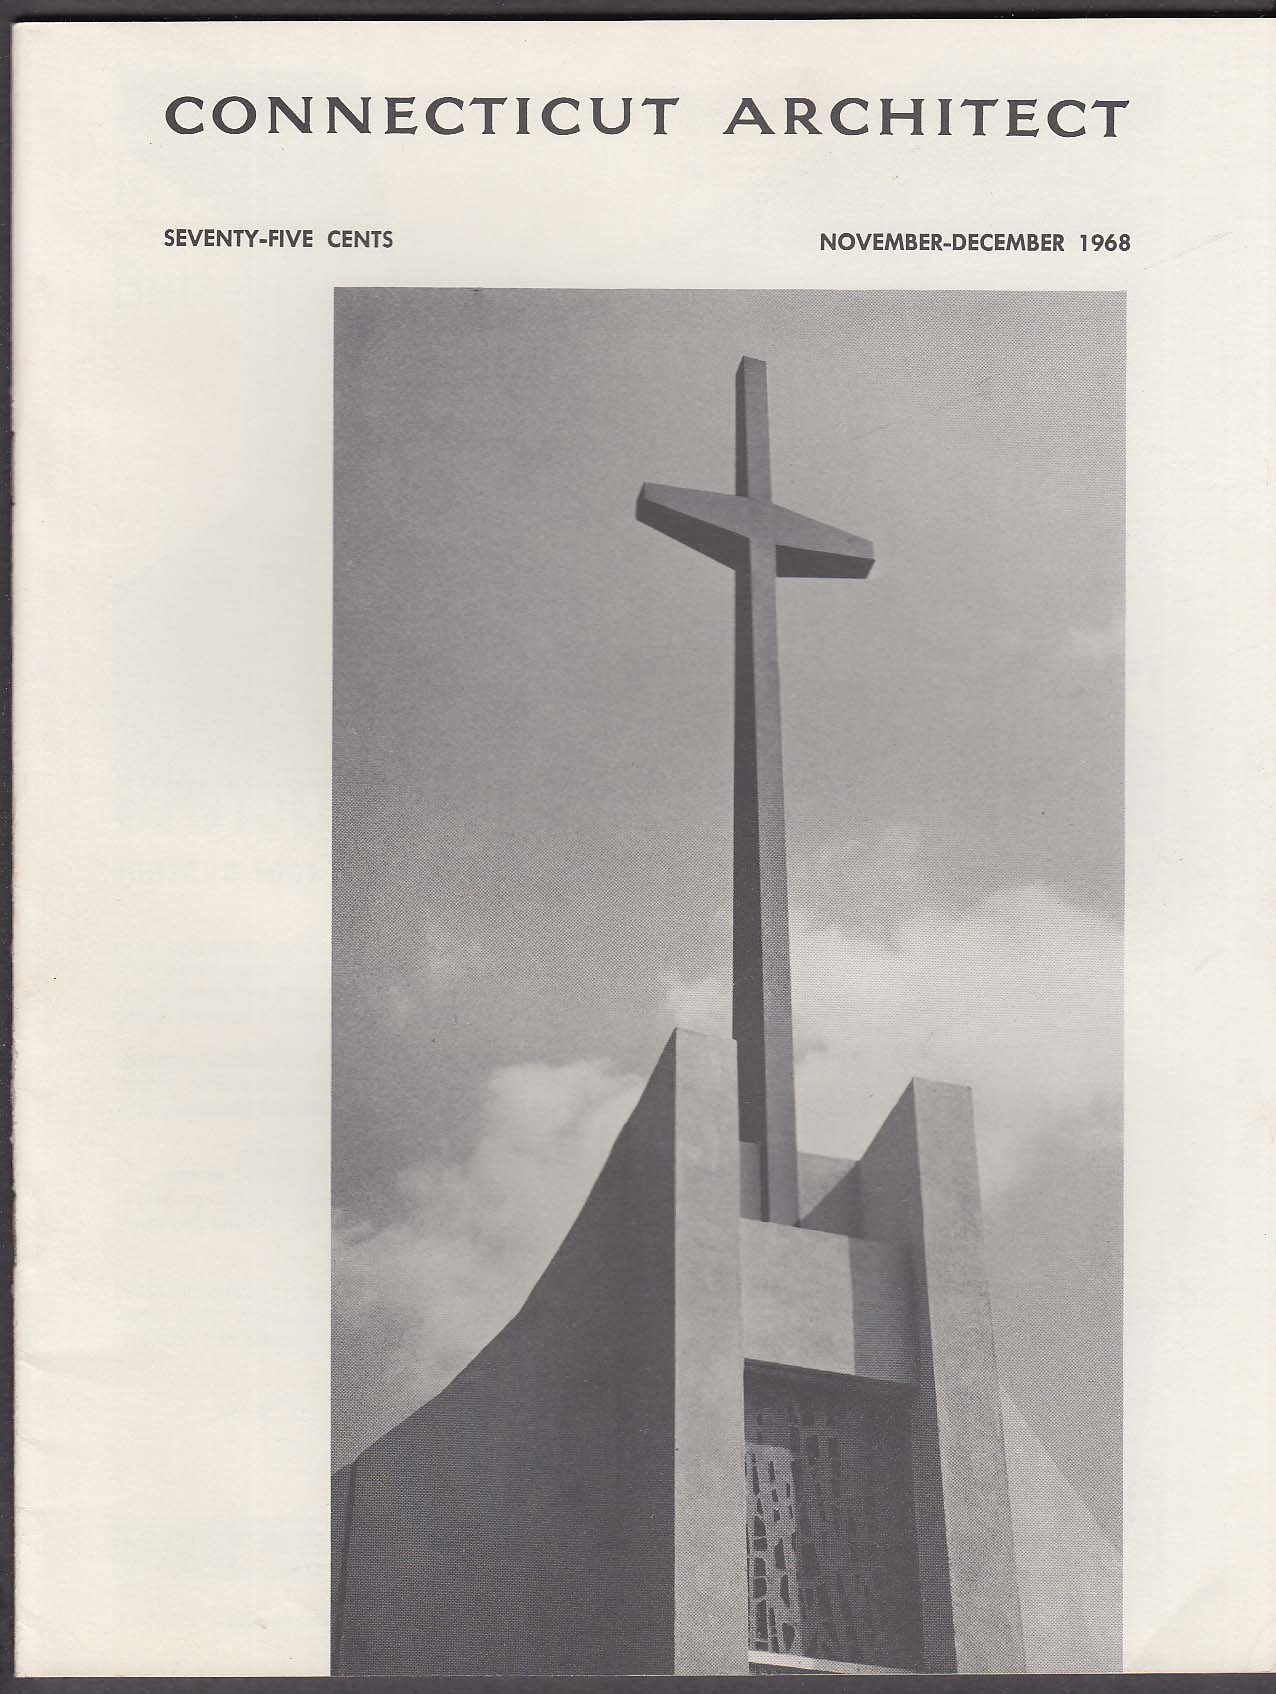 CONNECTICUT ARCHITECT Equal Opportunity Religious Architecture 11-12 1968